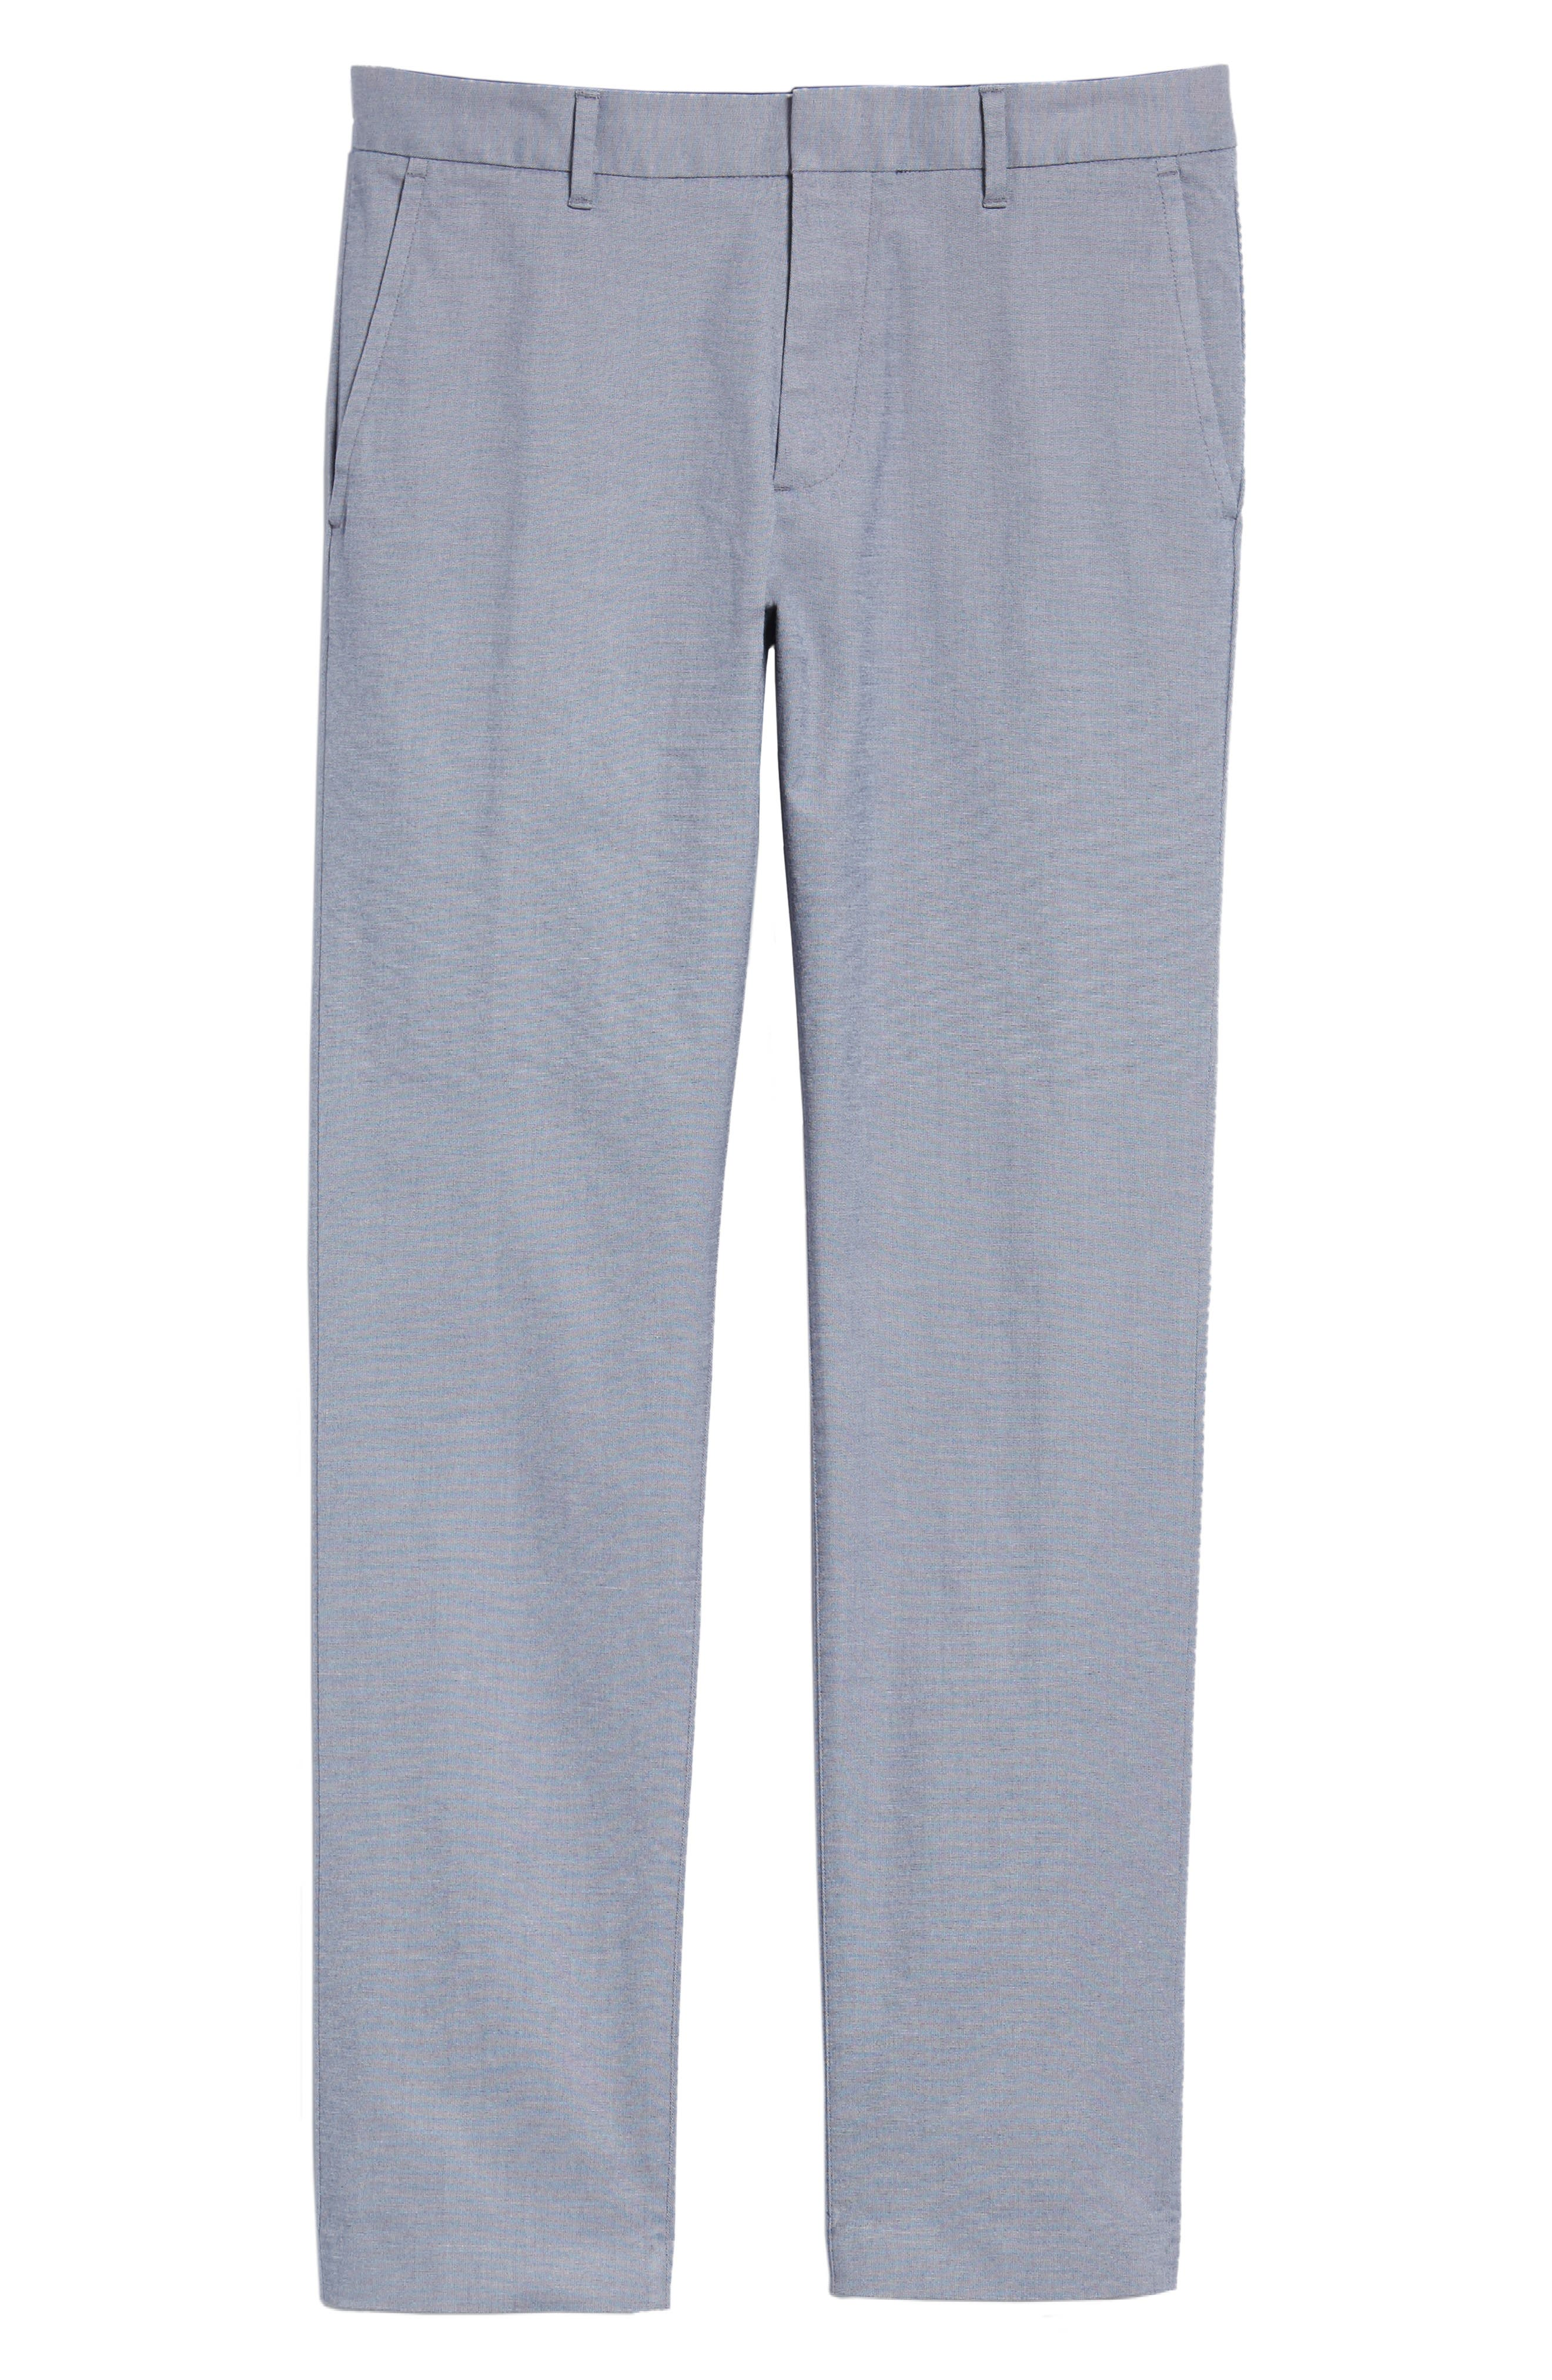 Weekday Warrior Flat Front Stretch Cotton Pants,                             Alternate thumbnail 14, color,